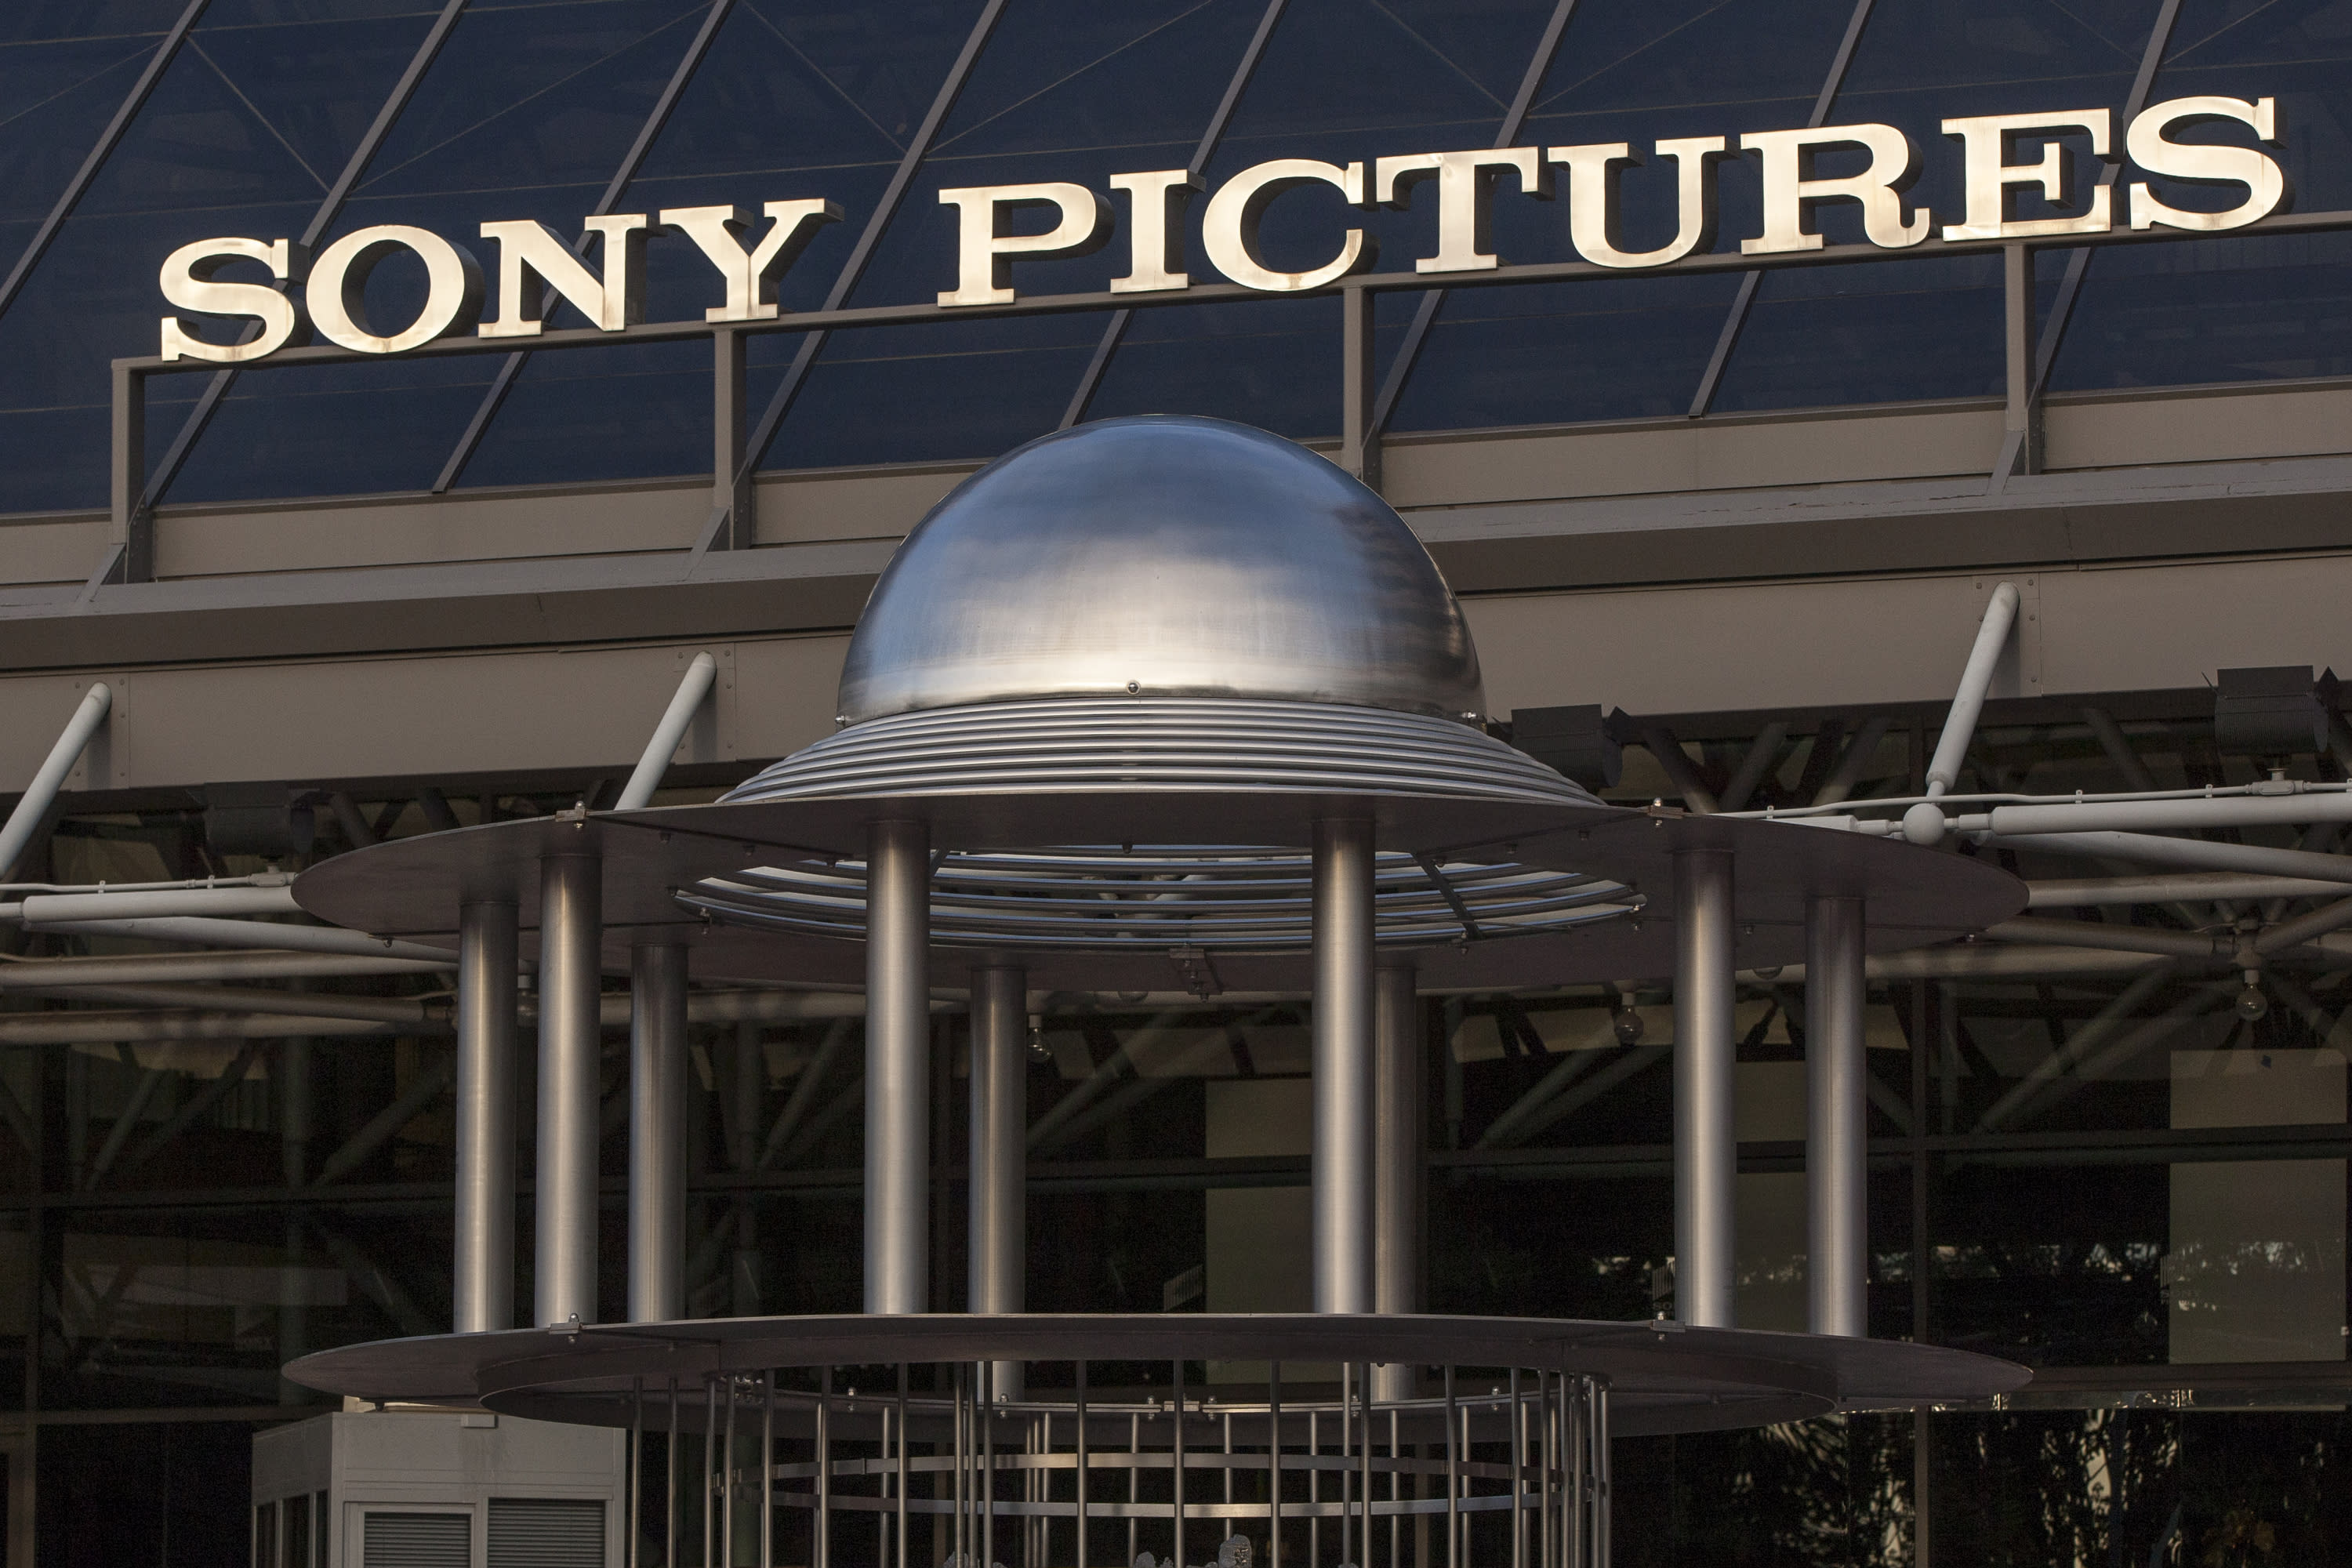 As dust clears, what's next for Sony?